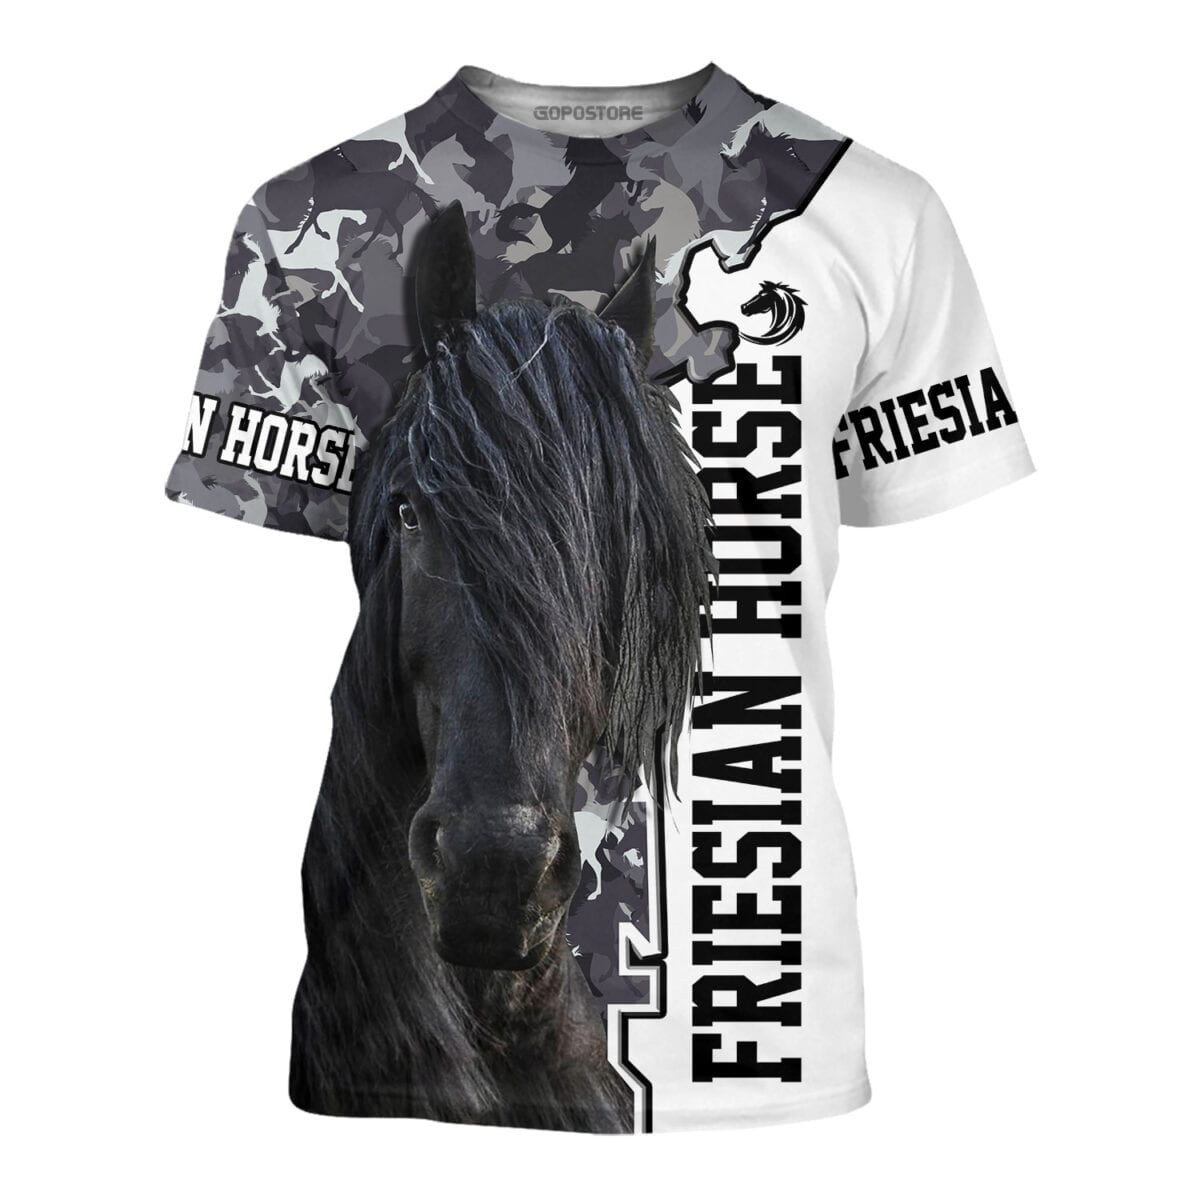 Beautiful Friesian Horse Art 3d All Over Printed Shirts Gopostore Online Clothing Store